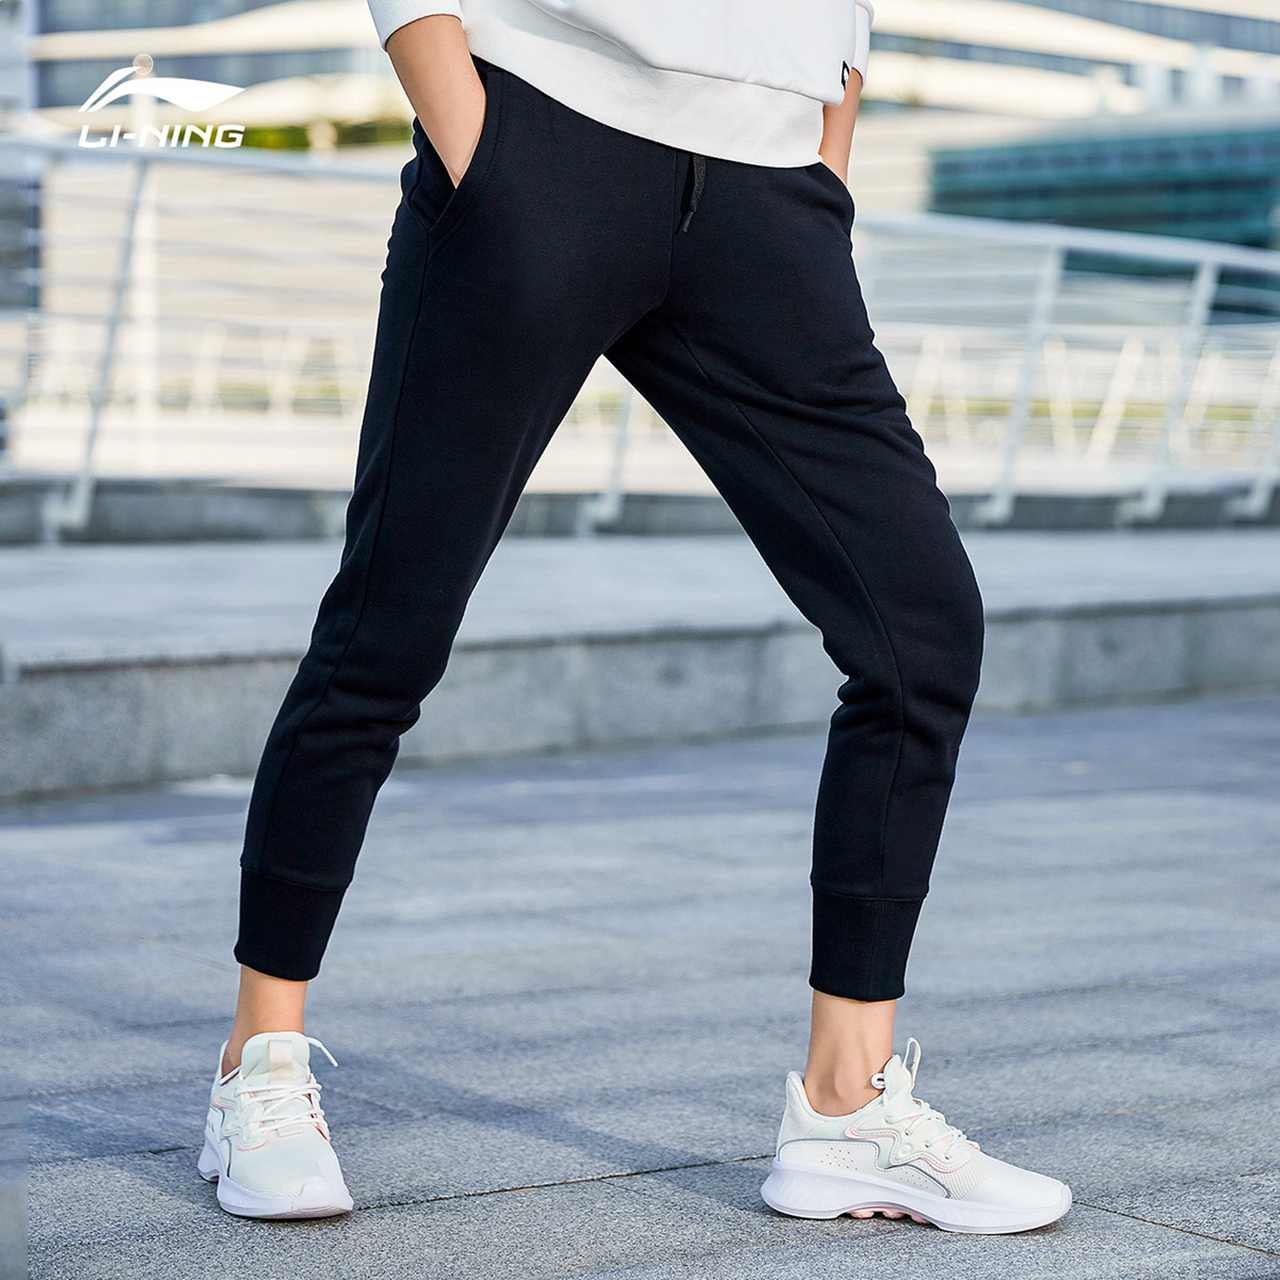 Li ningwei pants official authentic new training series pants women's small leg knitting sports casual pants